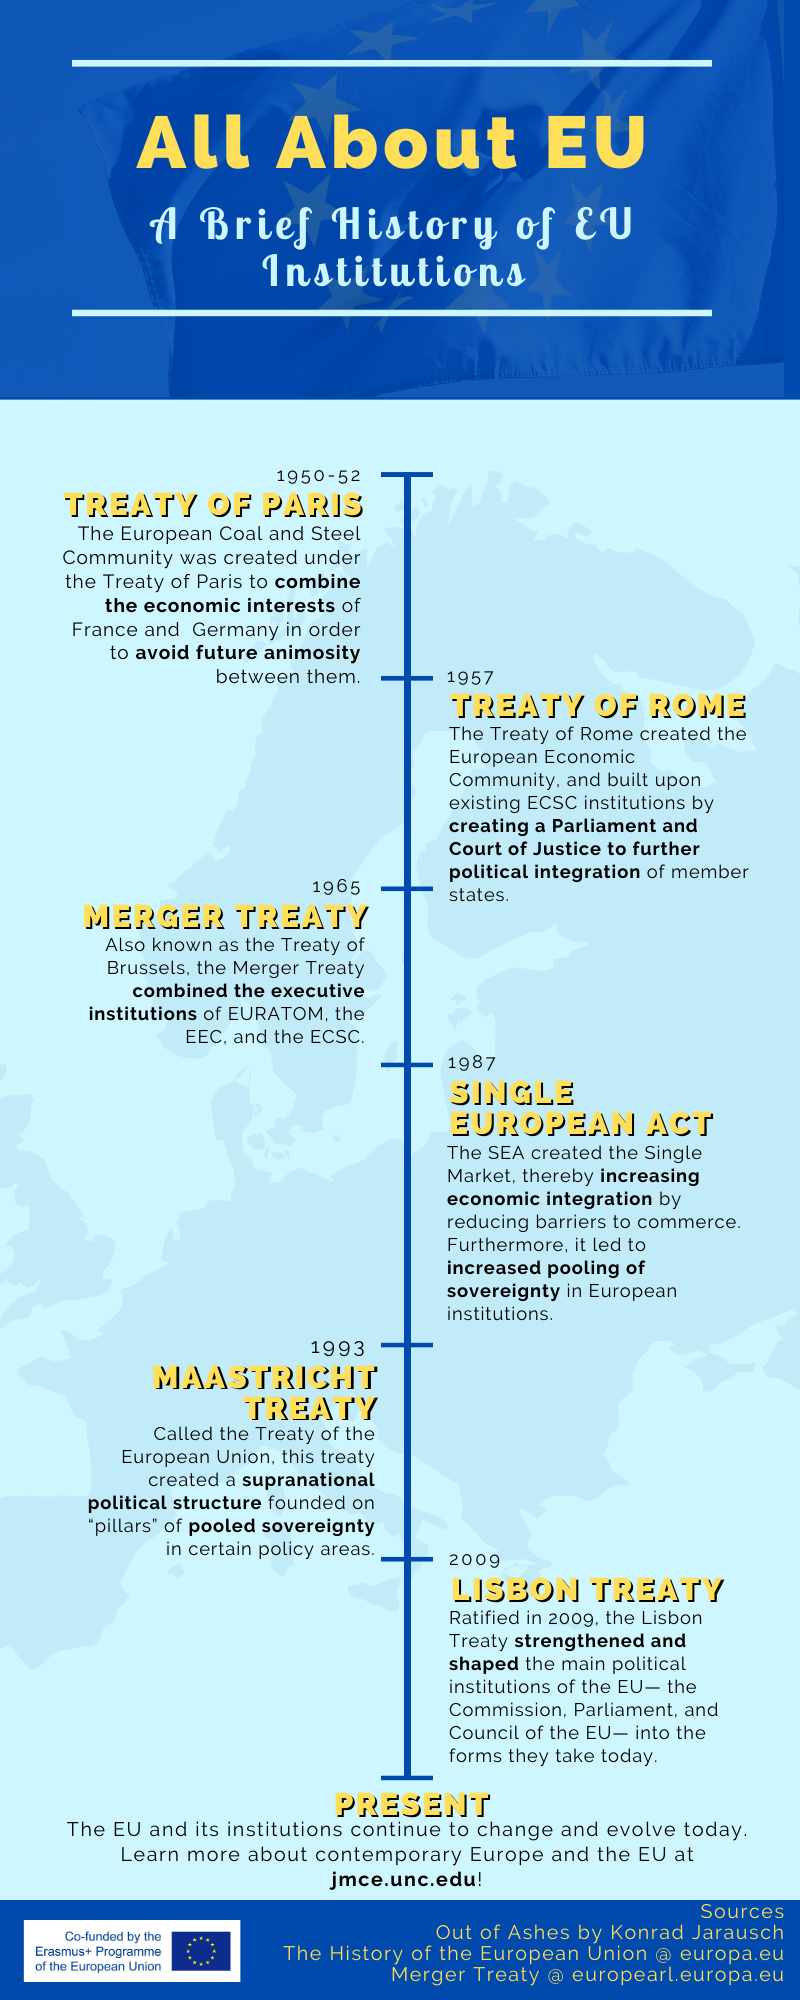 Infographic with timeline of EU institutions being formed in the post-WWII era.